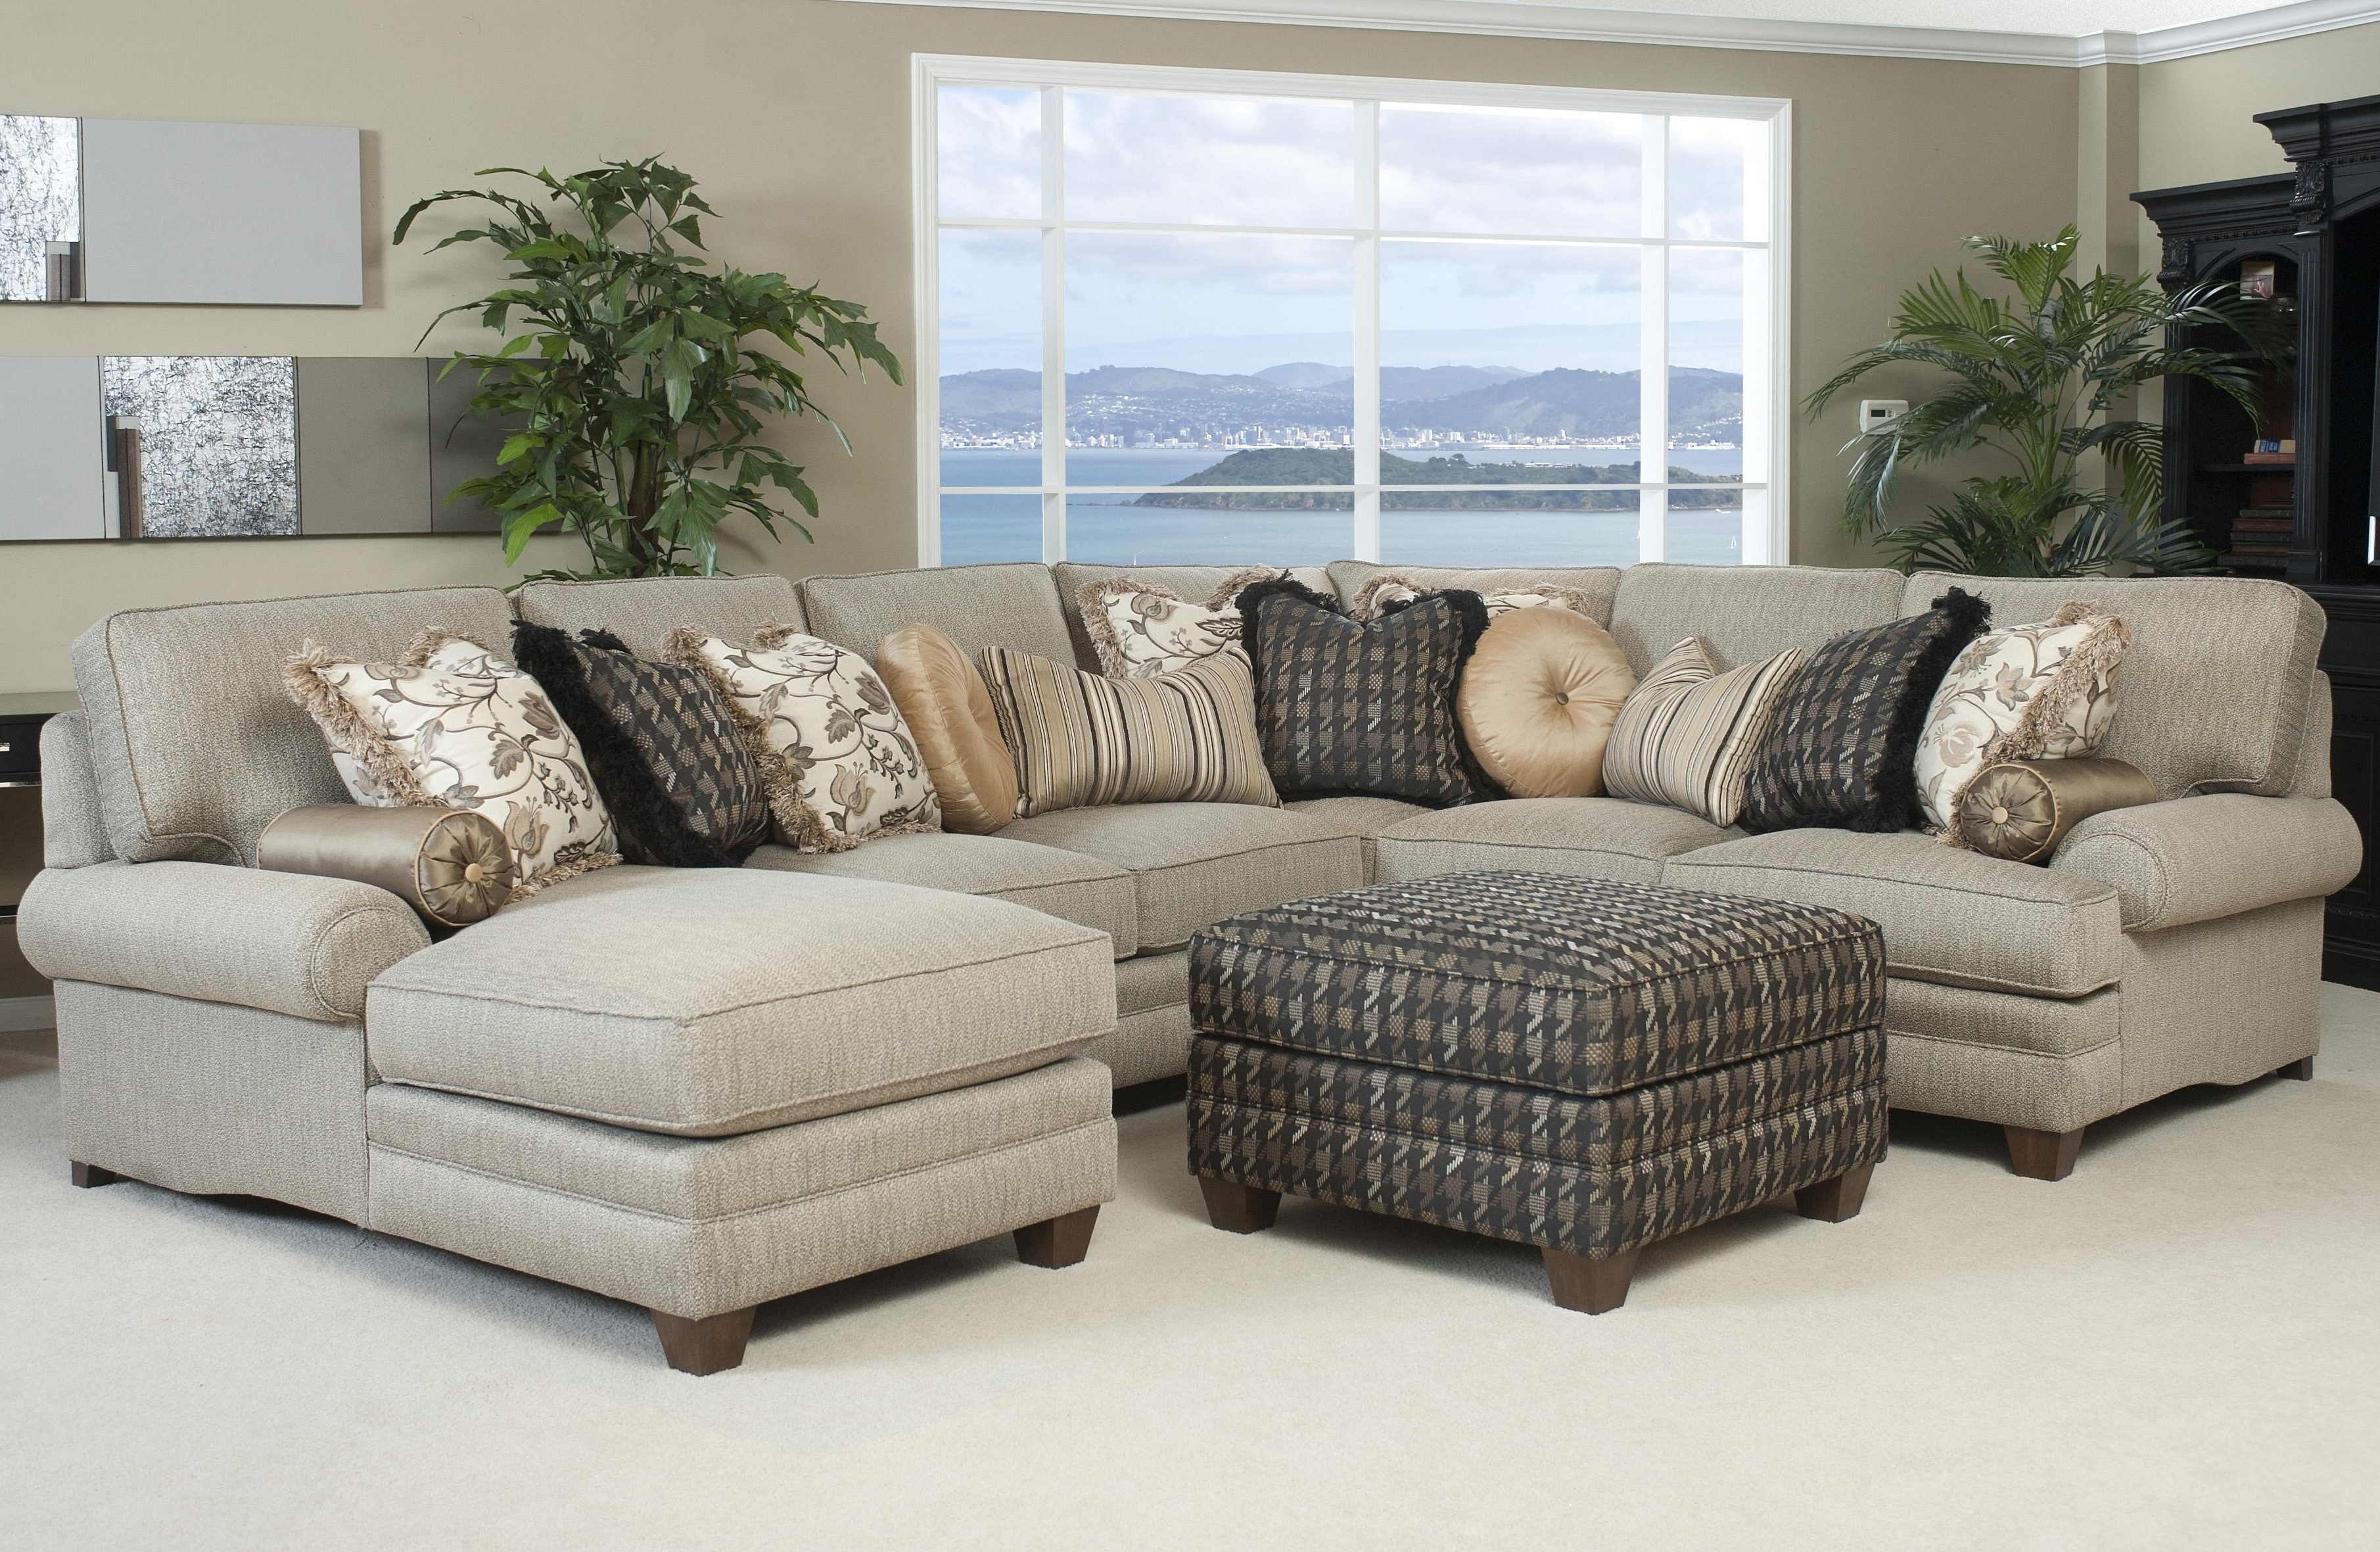 Sectional Sofa : L Shaped Settees For Sale Small U Shaped Intended For Most Up To Date Small U Shaped Sectional Sofas (View 13 of 20)